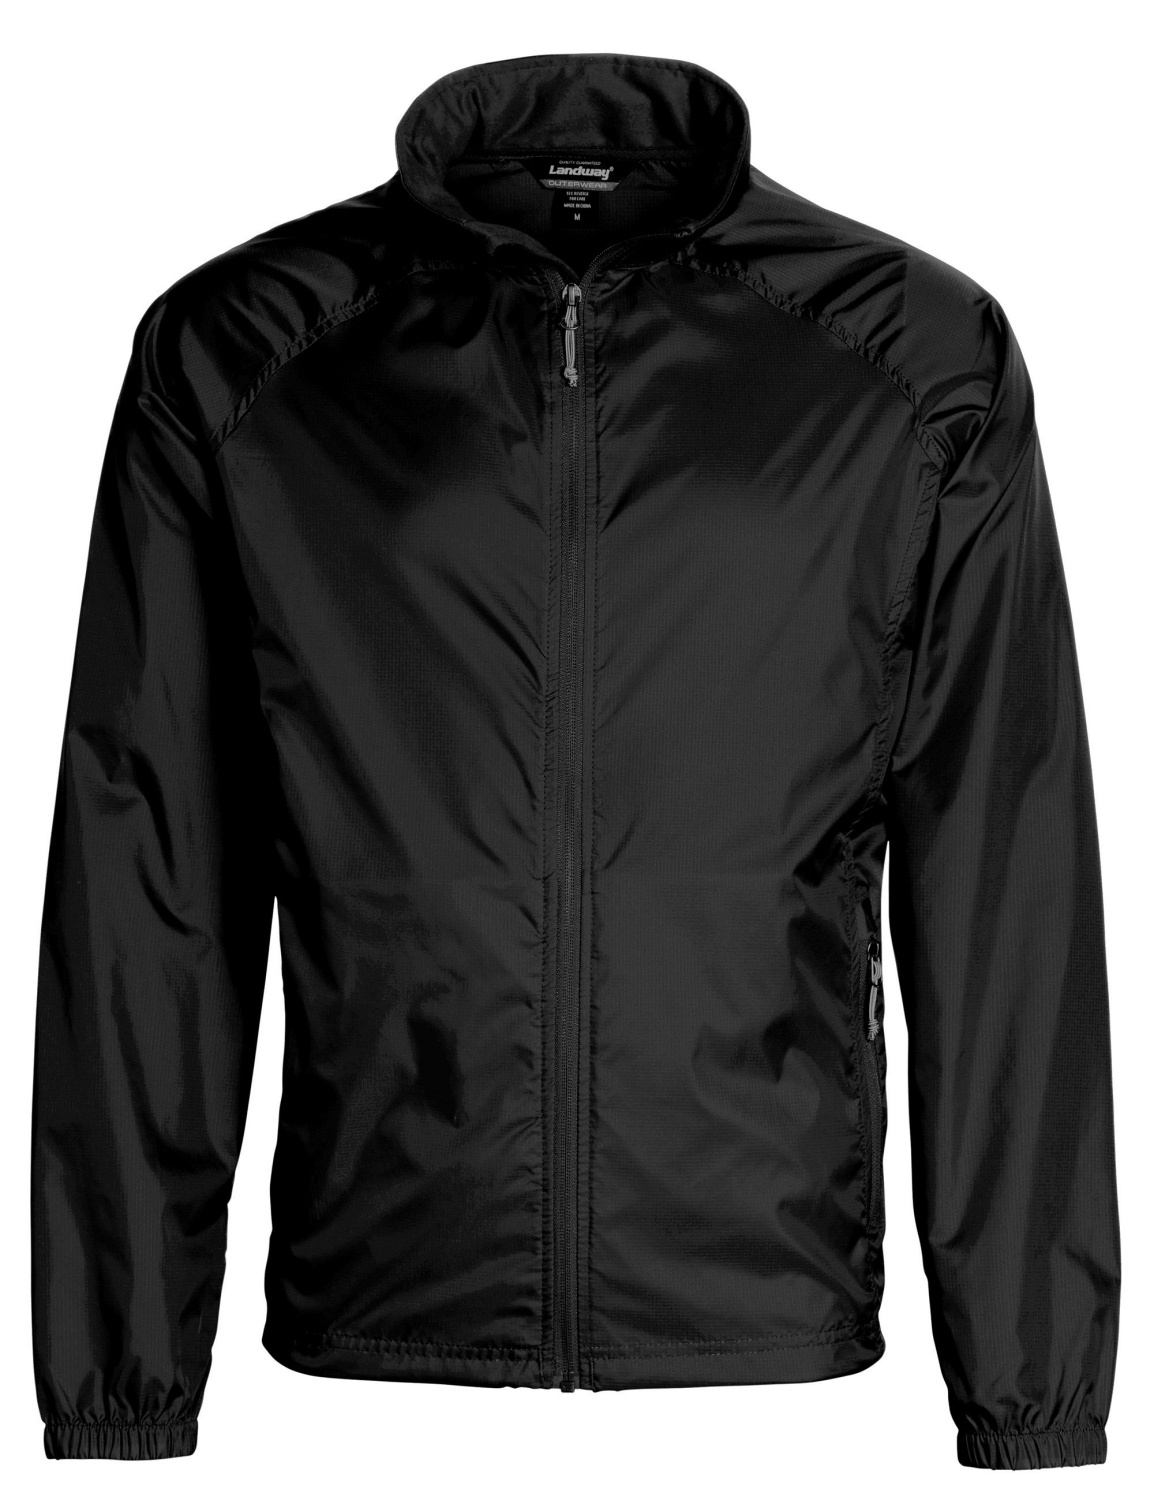 'Landway 7000 Men's Wind Resistant Rip Stop Nylon Windbreaker'